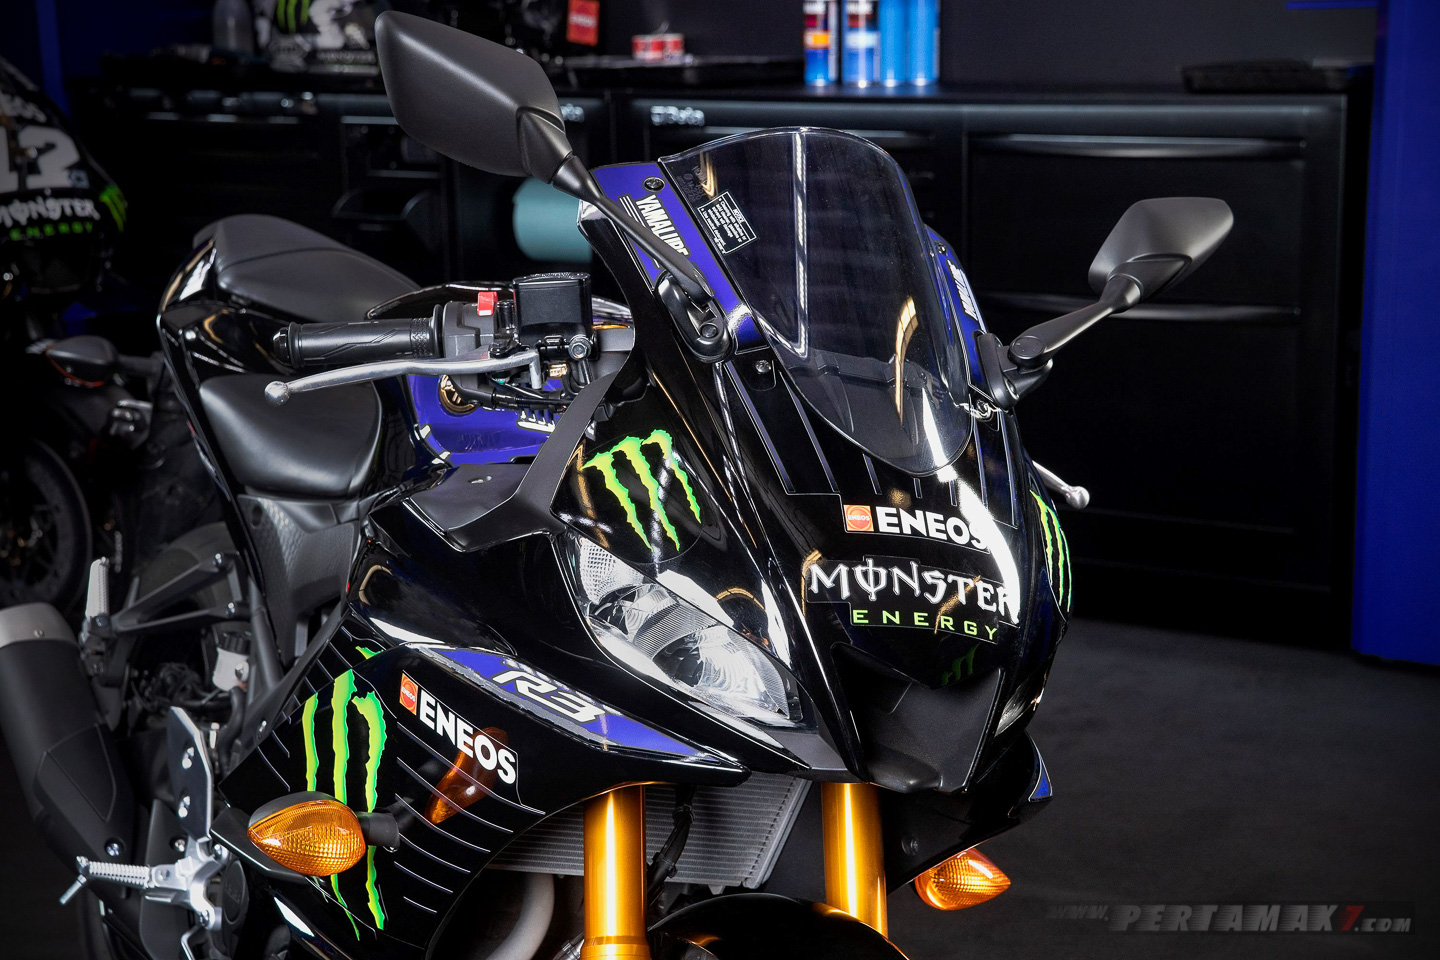 Yamaha R3 Monster Energy headlight